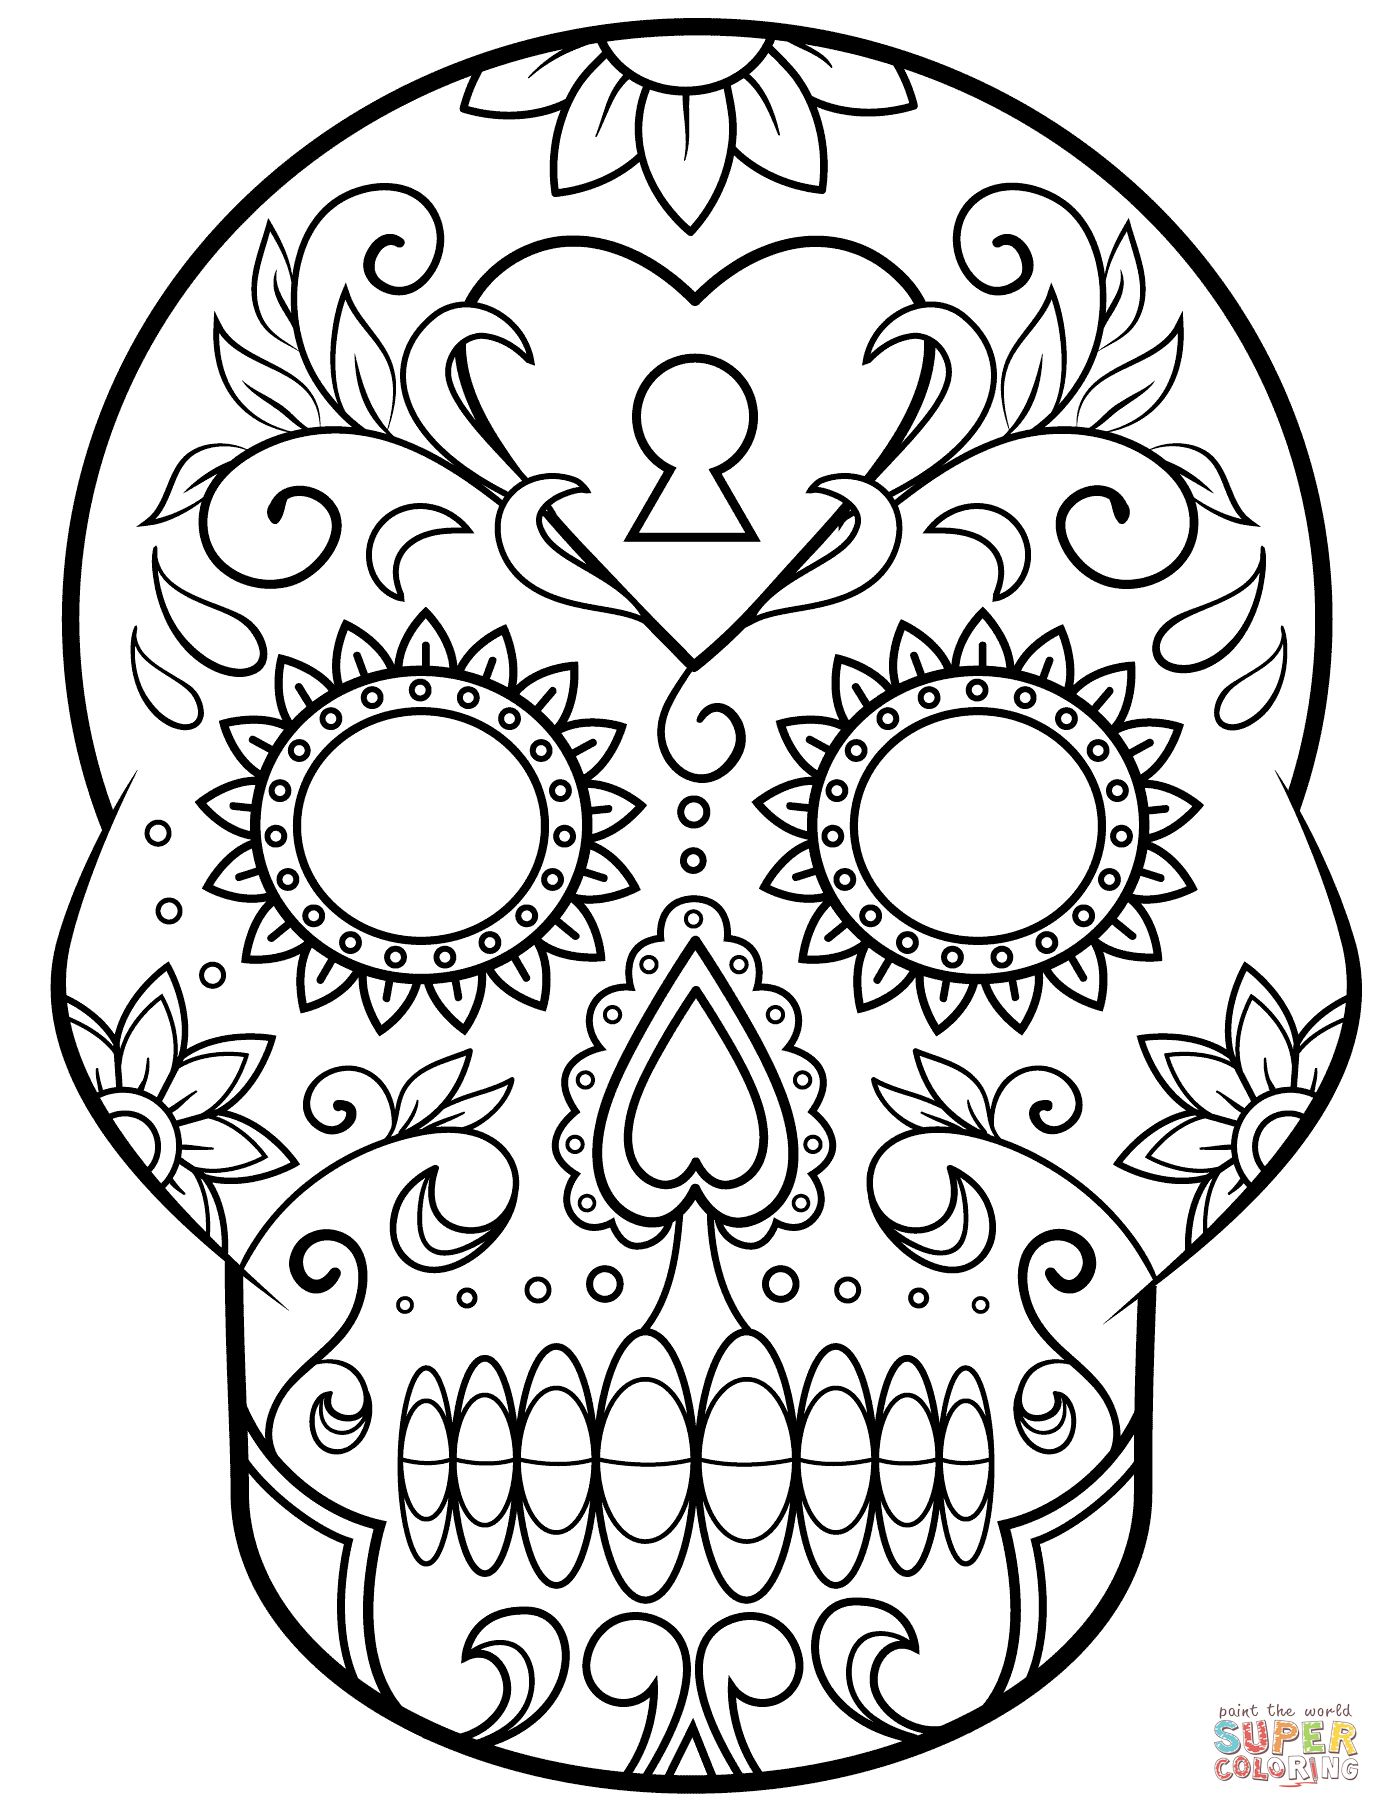 Sugar Skull Coloring Page Woo Jr Kids Activities Skull Coloring Pages Sugar Skull Art Drawing Sugar Skull Artwork